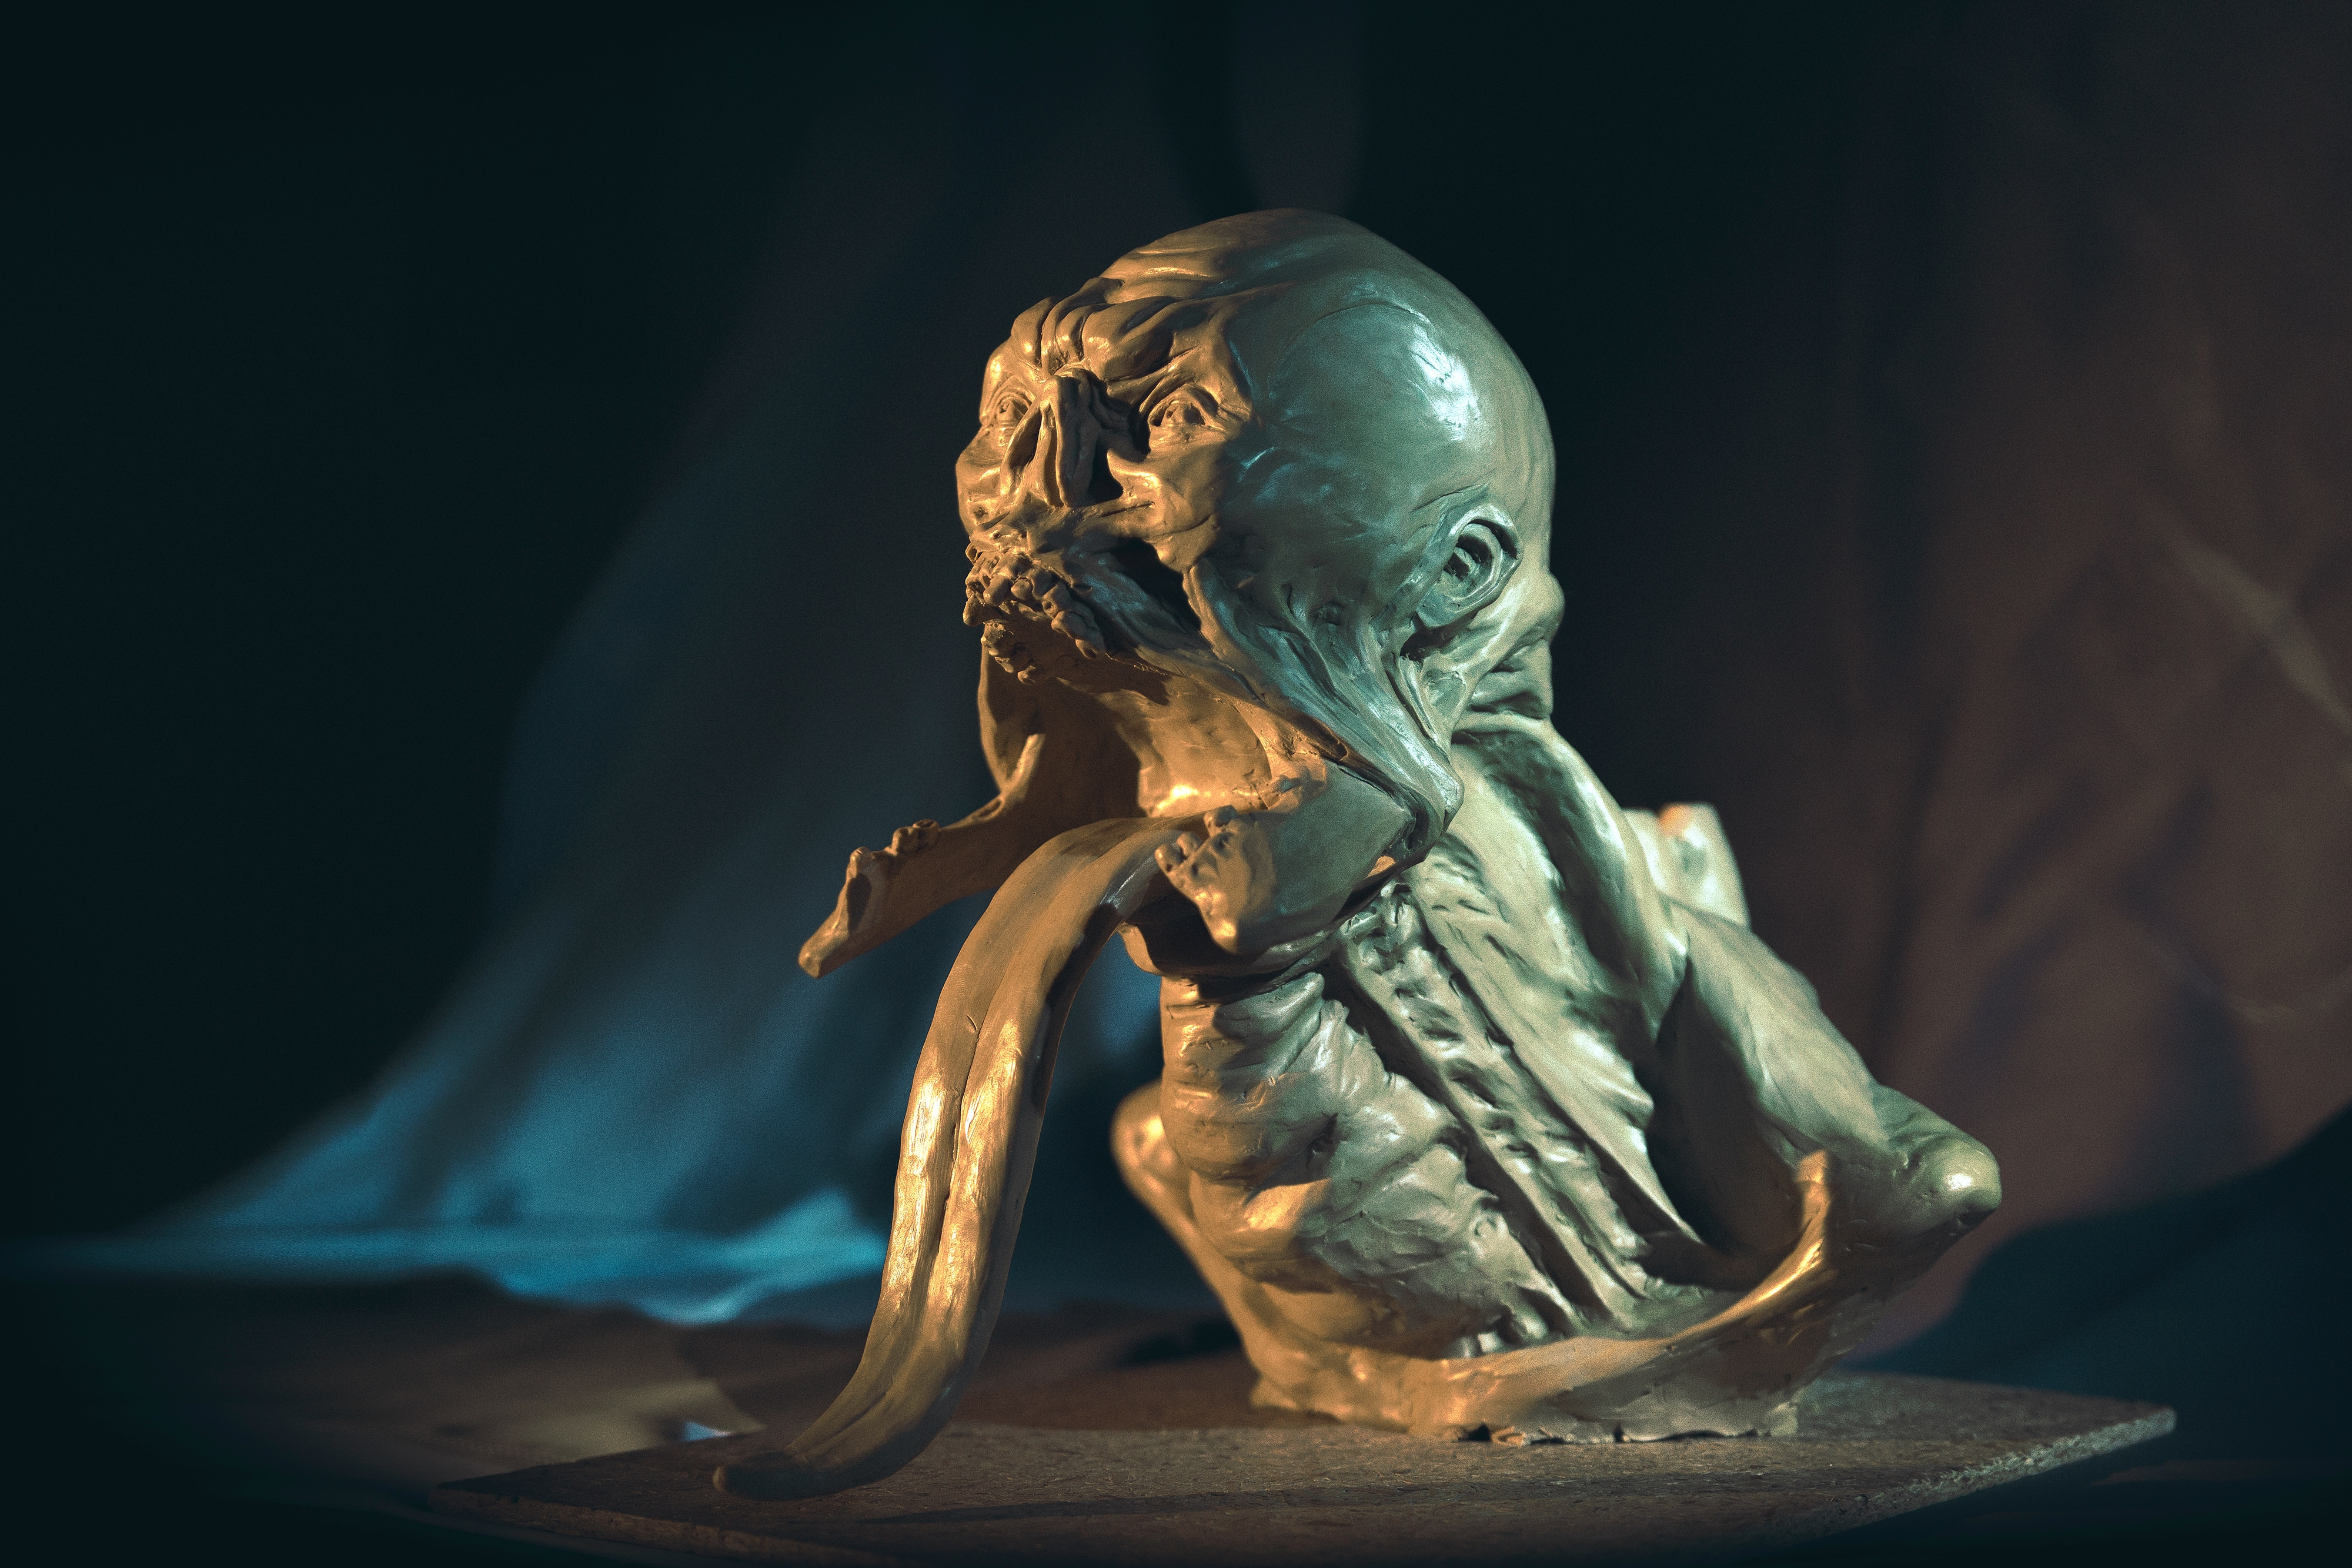 """sinkingcitysculpture 1 - Exclusive: The Sinking City Team Uses These Unsettling Sculptures to """"Get in the Mood"""""""